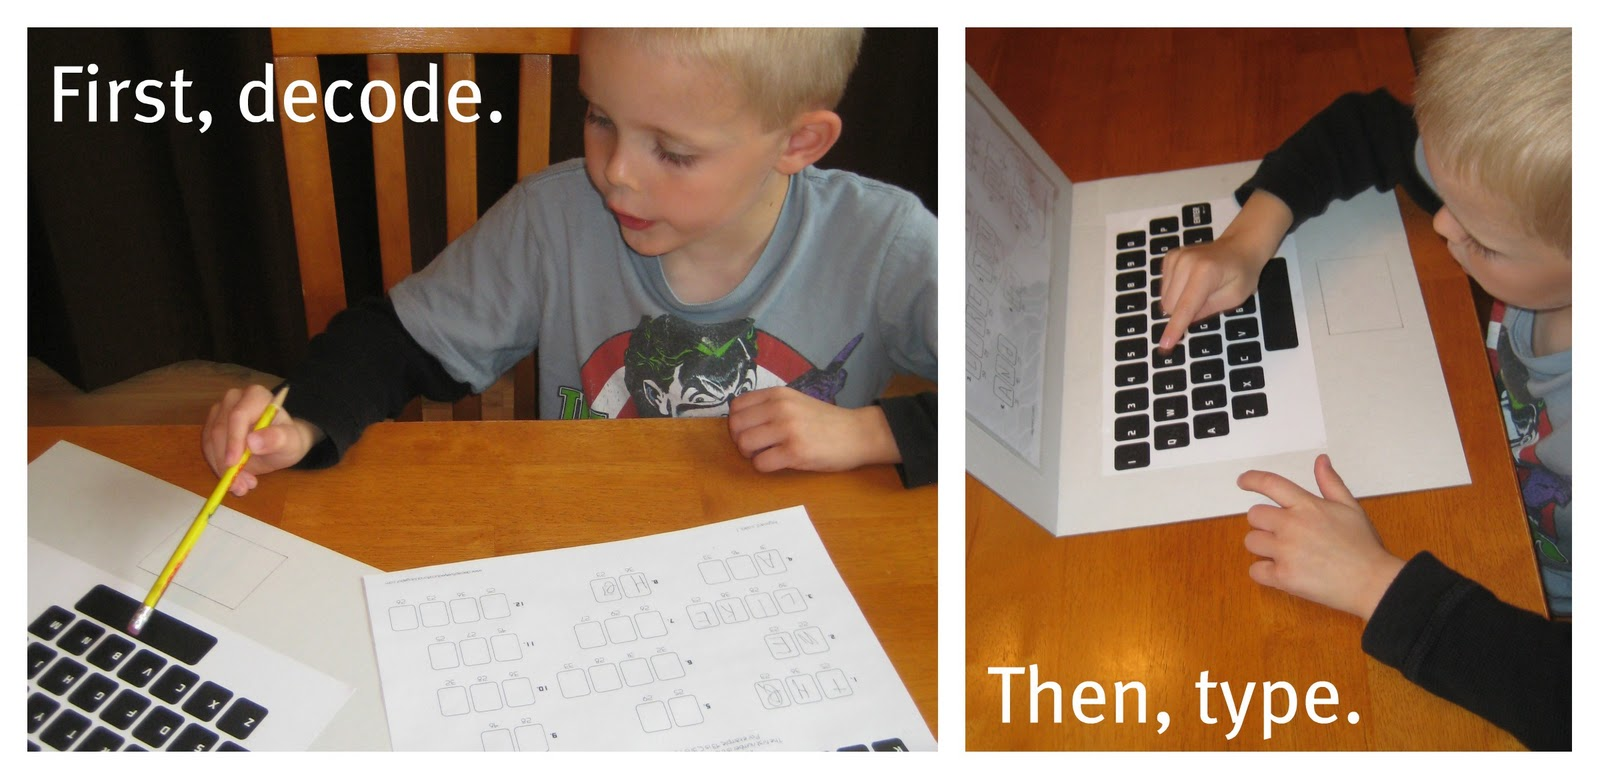 Relentlessly Fun Deceptively Educational Keyboard Codes Spelling Practice With A Homemade Laptop